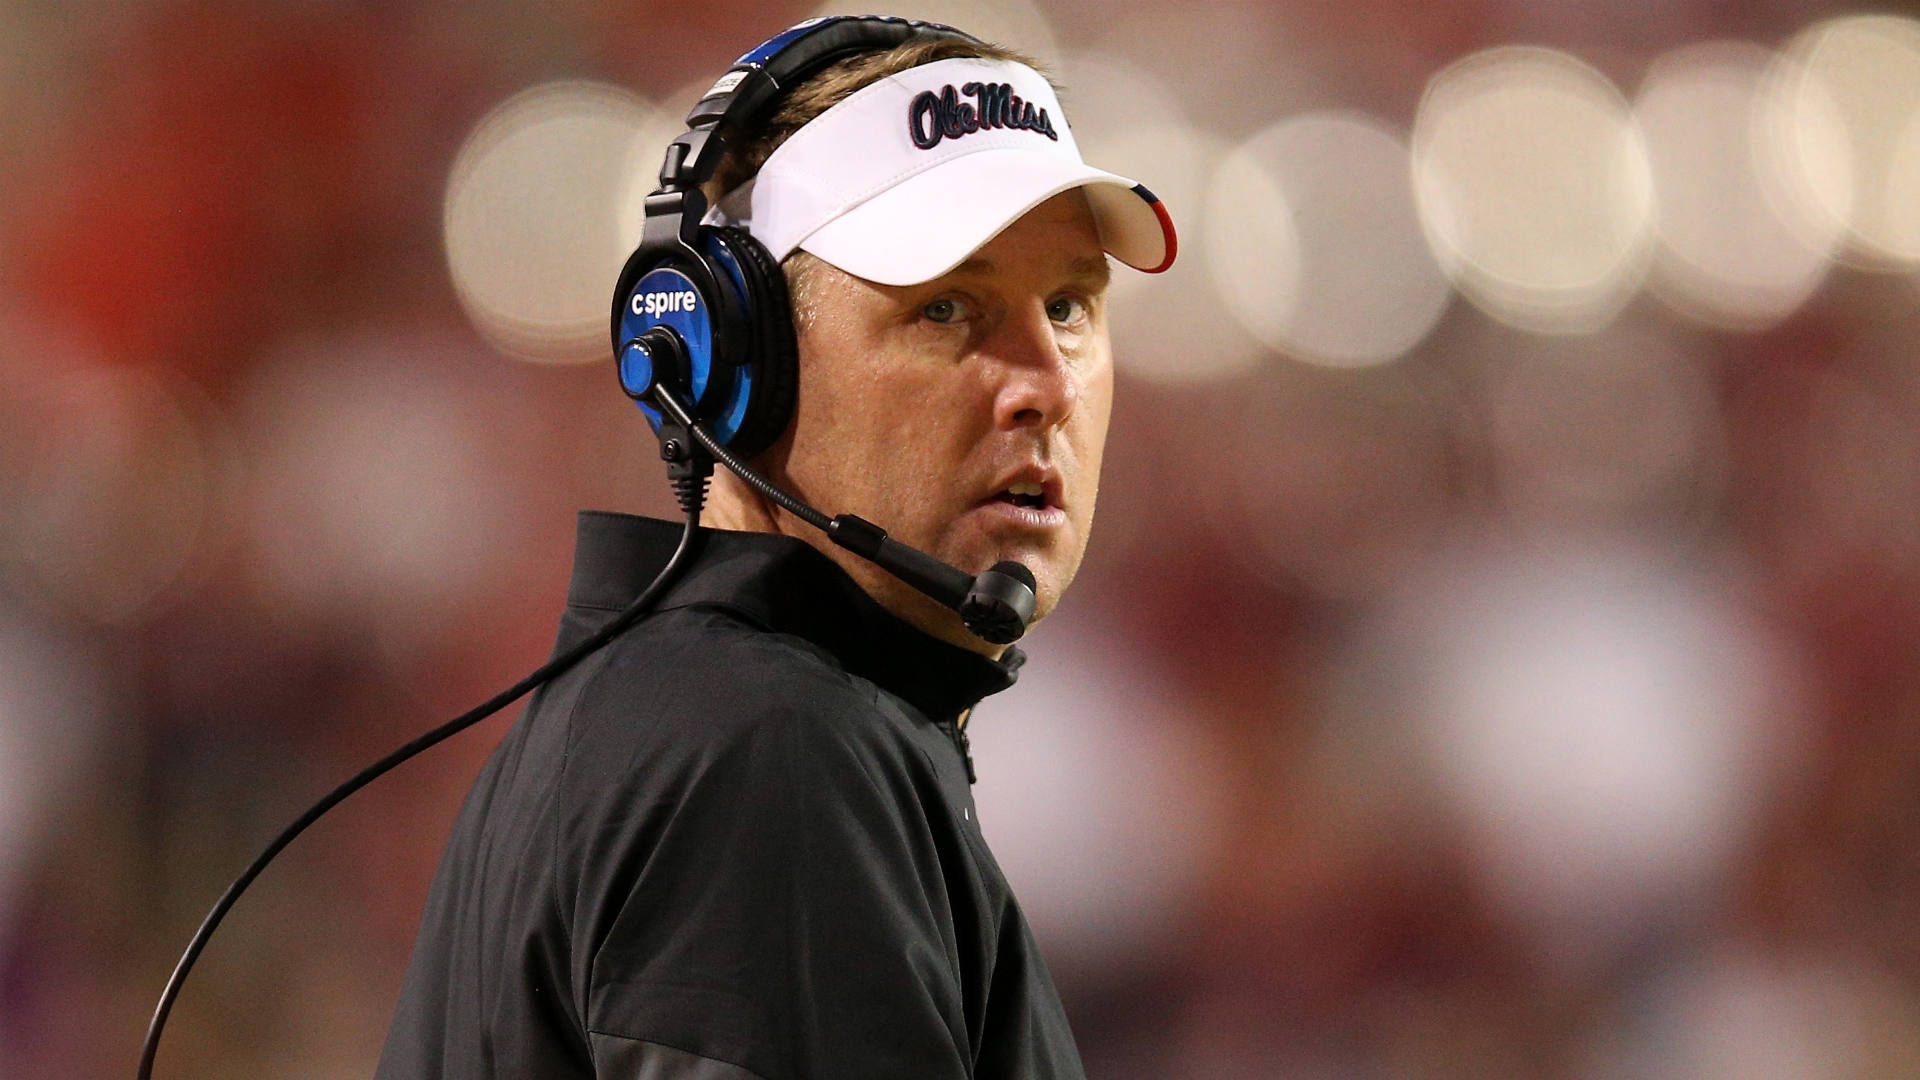 Hugh Freeze mentions God in his first public comments since resignation